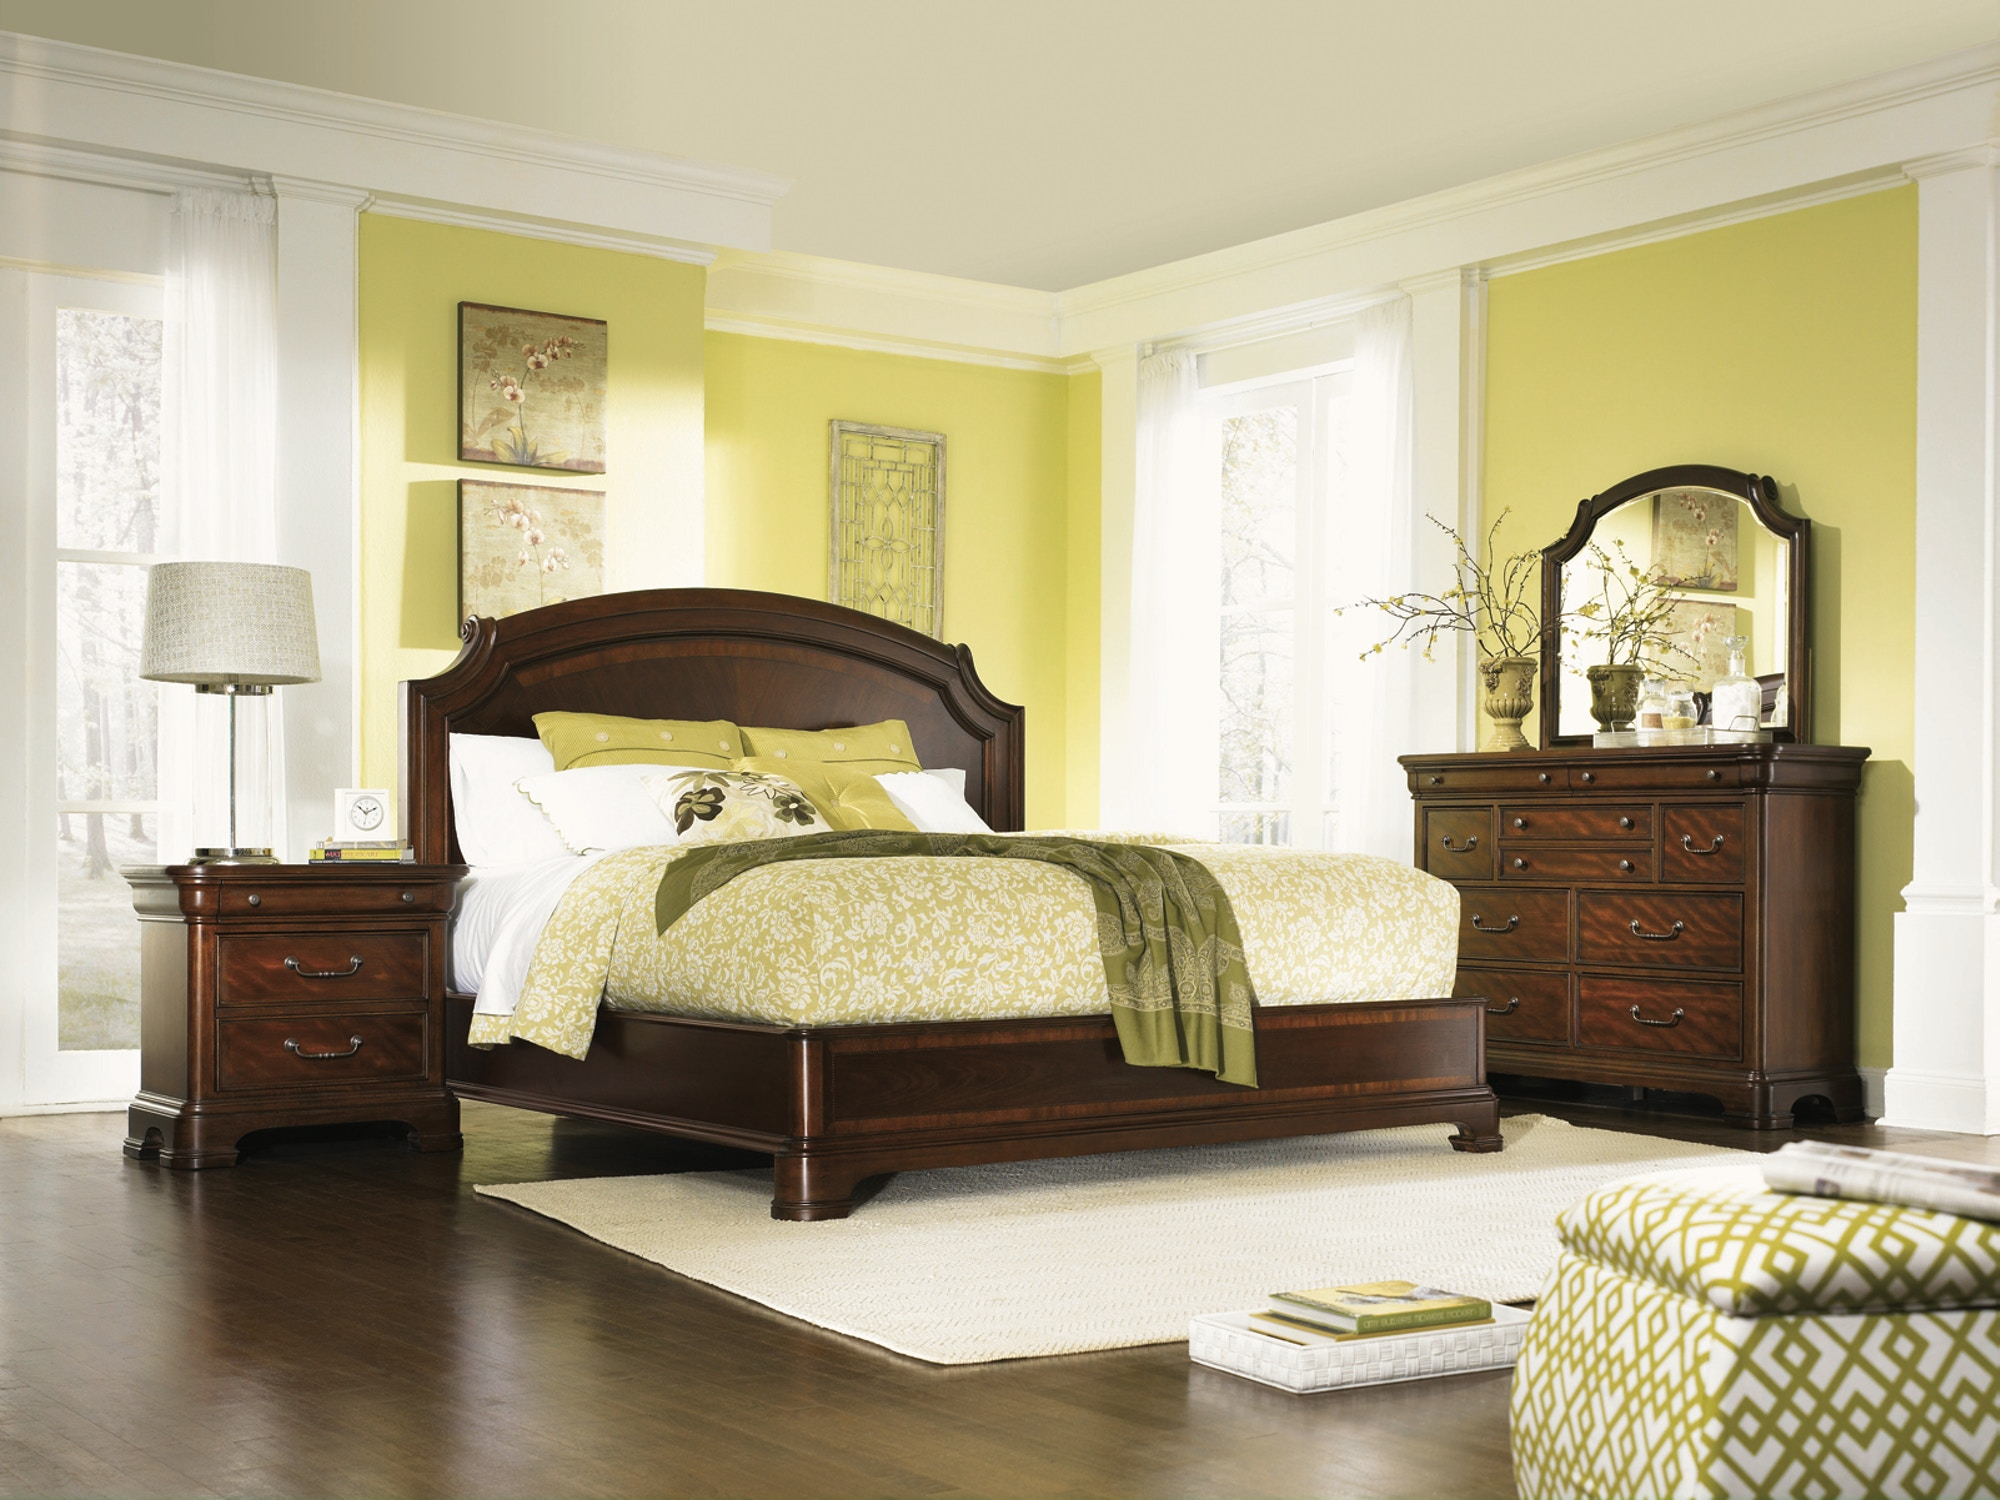 Legacy Classic Furniture Master Bedroom Sets Furniture Fair - Furniture fair bedroom sets